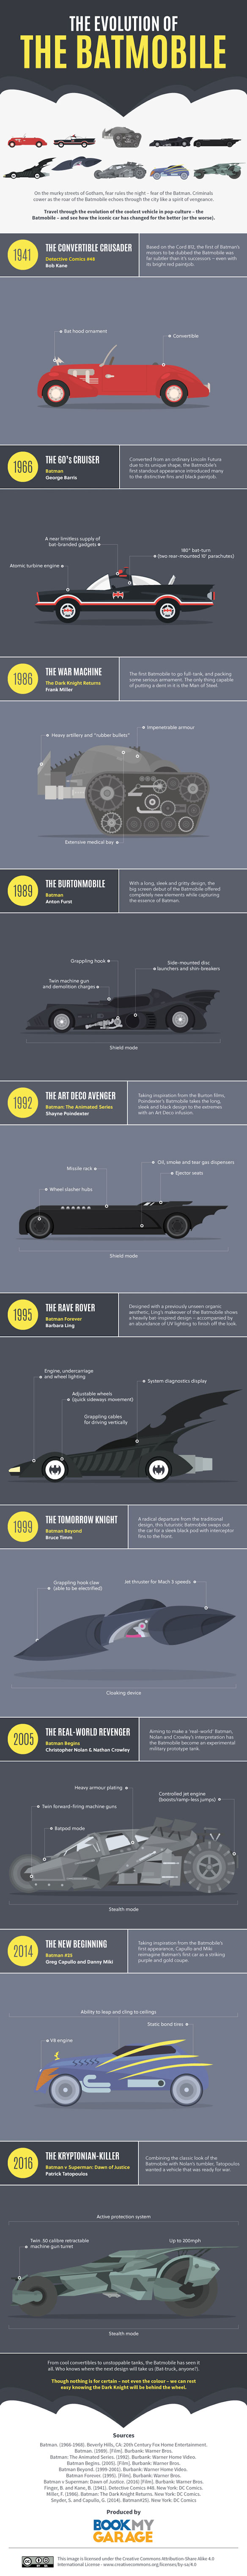 batmobile-evolution